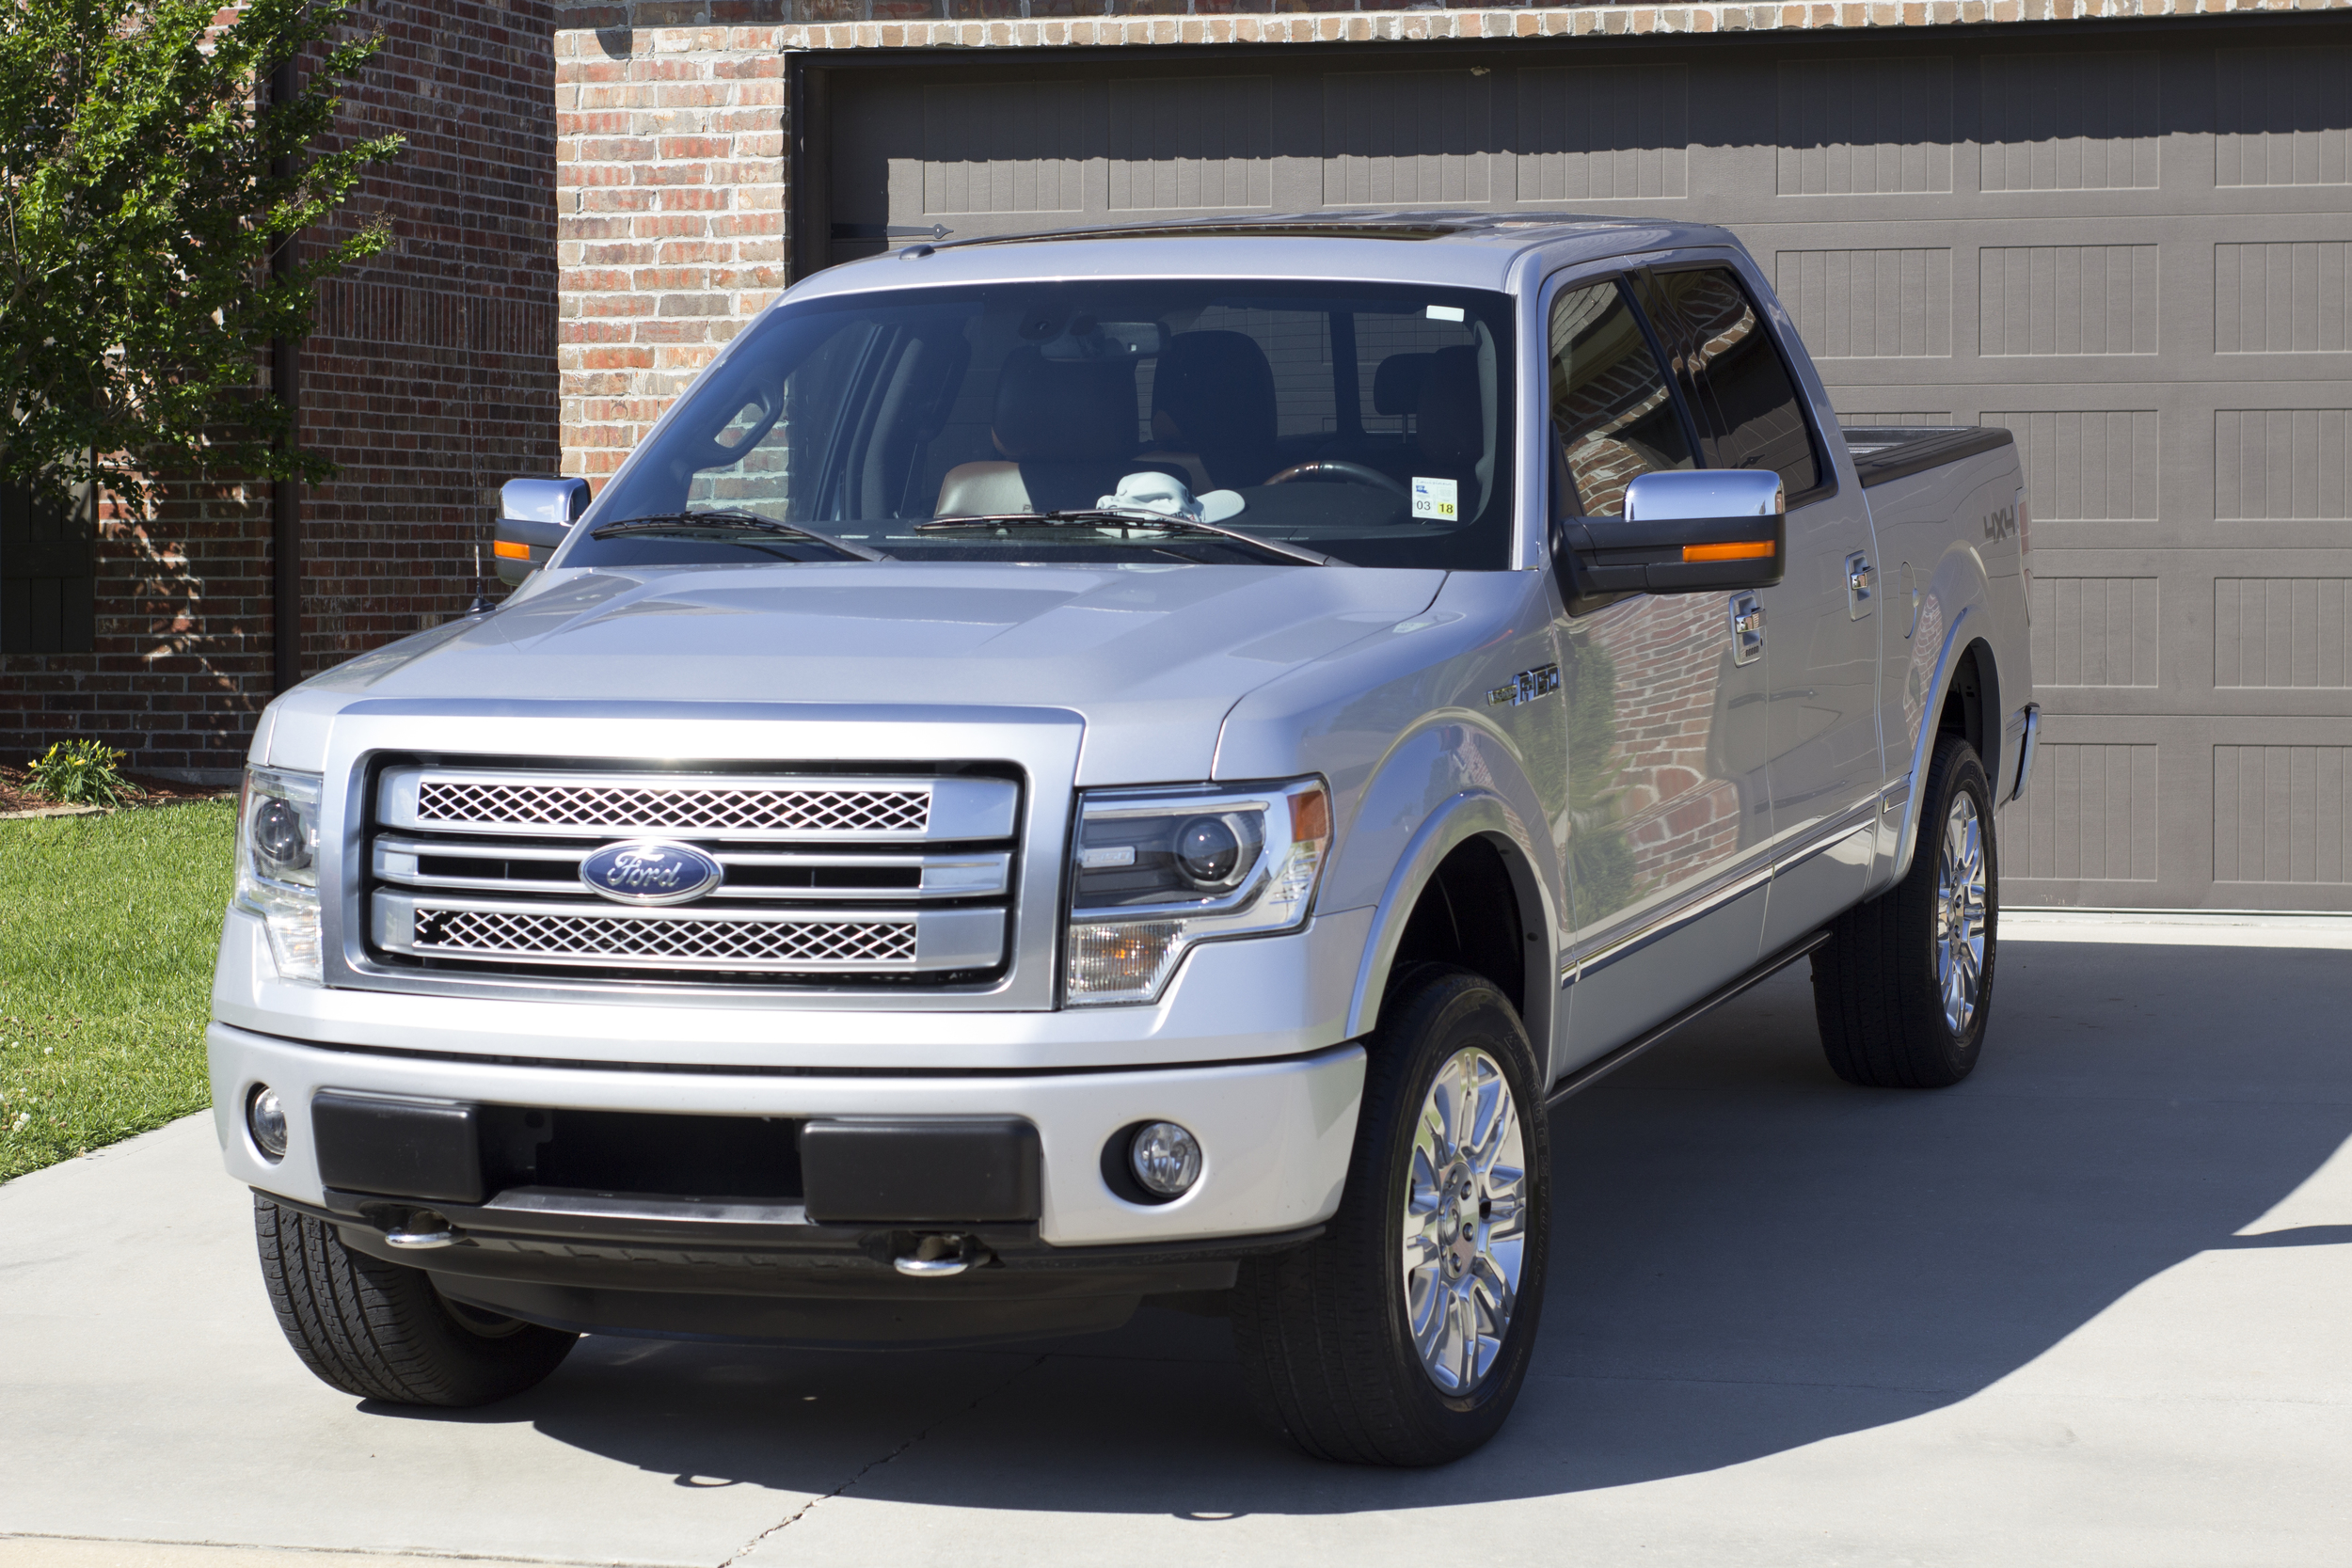 """""""My F-150 crew cab had several scratches and flaws in the paint. The gold package with the clay bar treatment, compound, and sealer brought all of the flaws out and had my truck shining like new. Very happy customer!""""- David"""